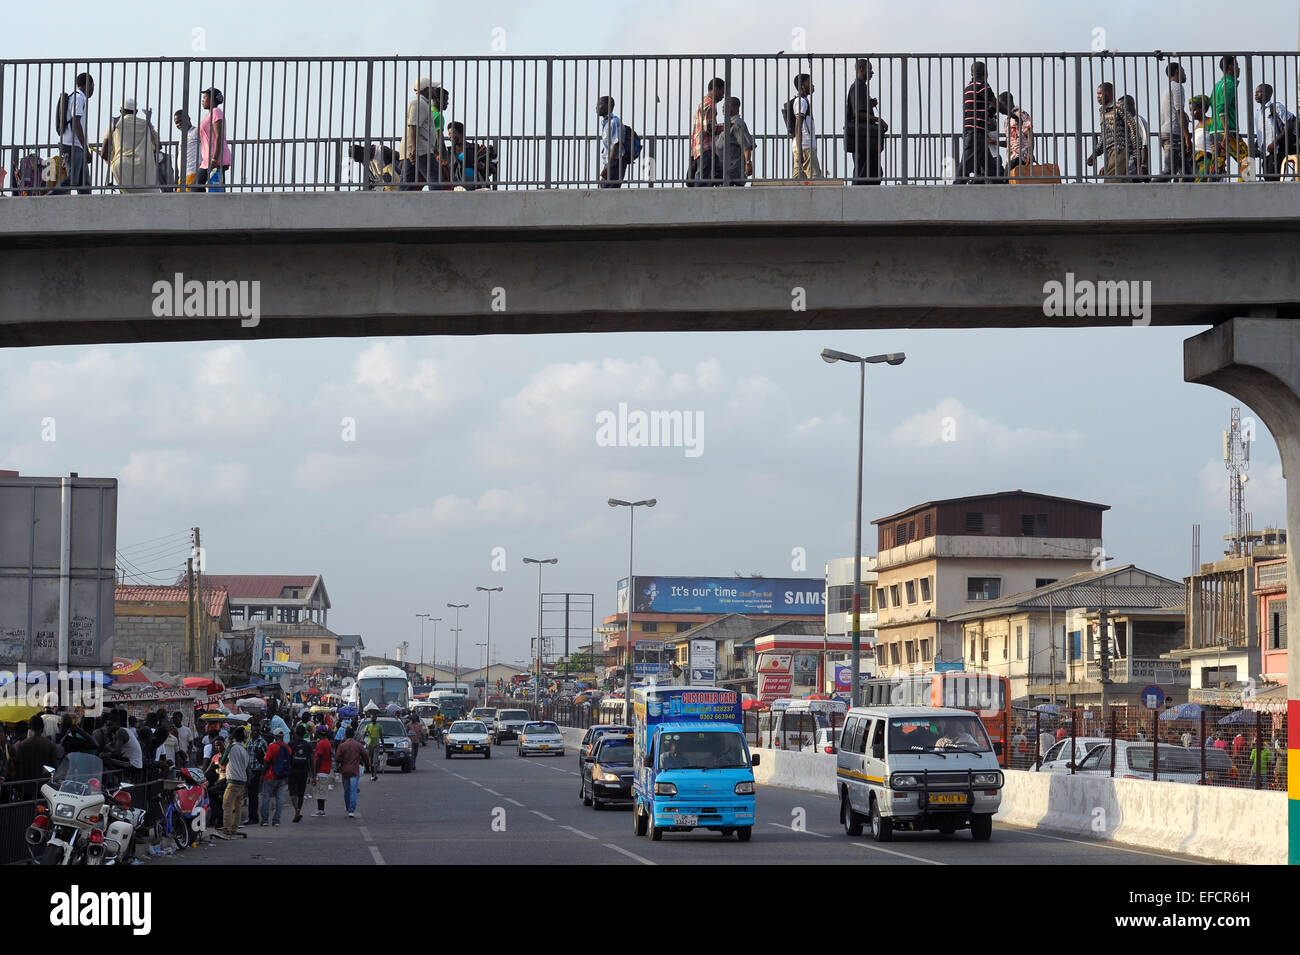 A pedestrian walkway over a main thoroughfare in downtown Accra, Ghana, West Africa. - Stock Image